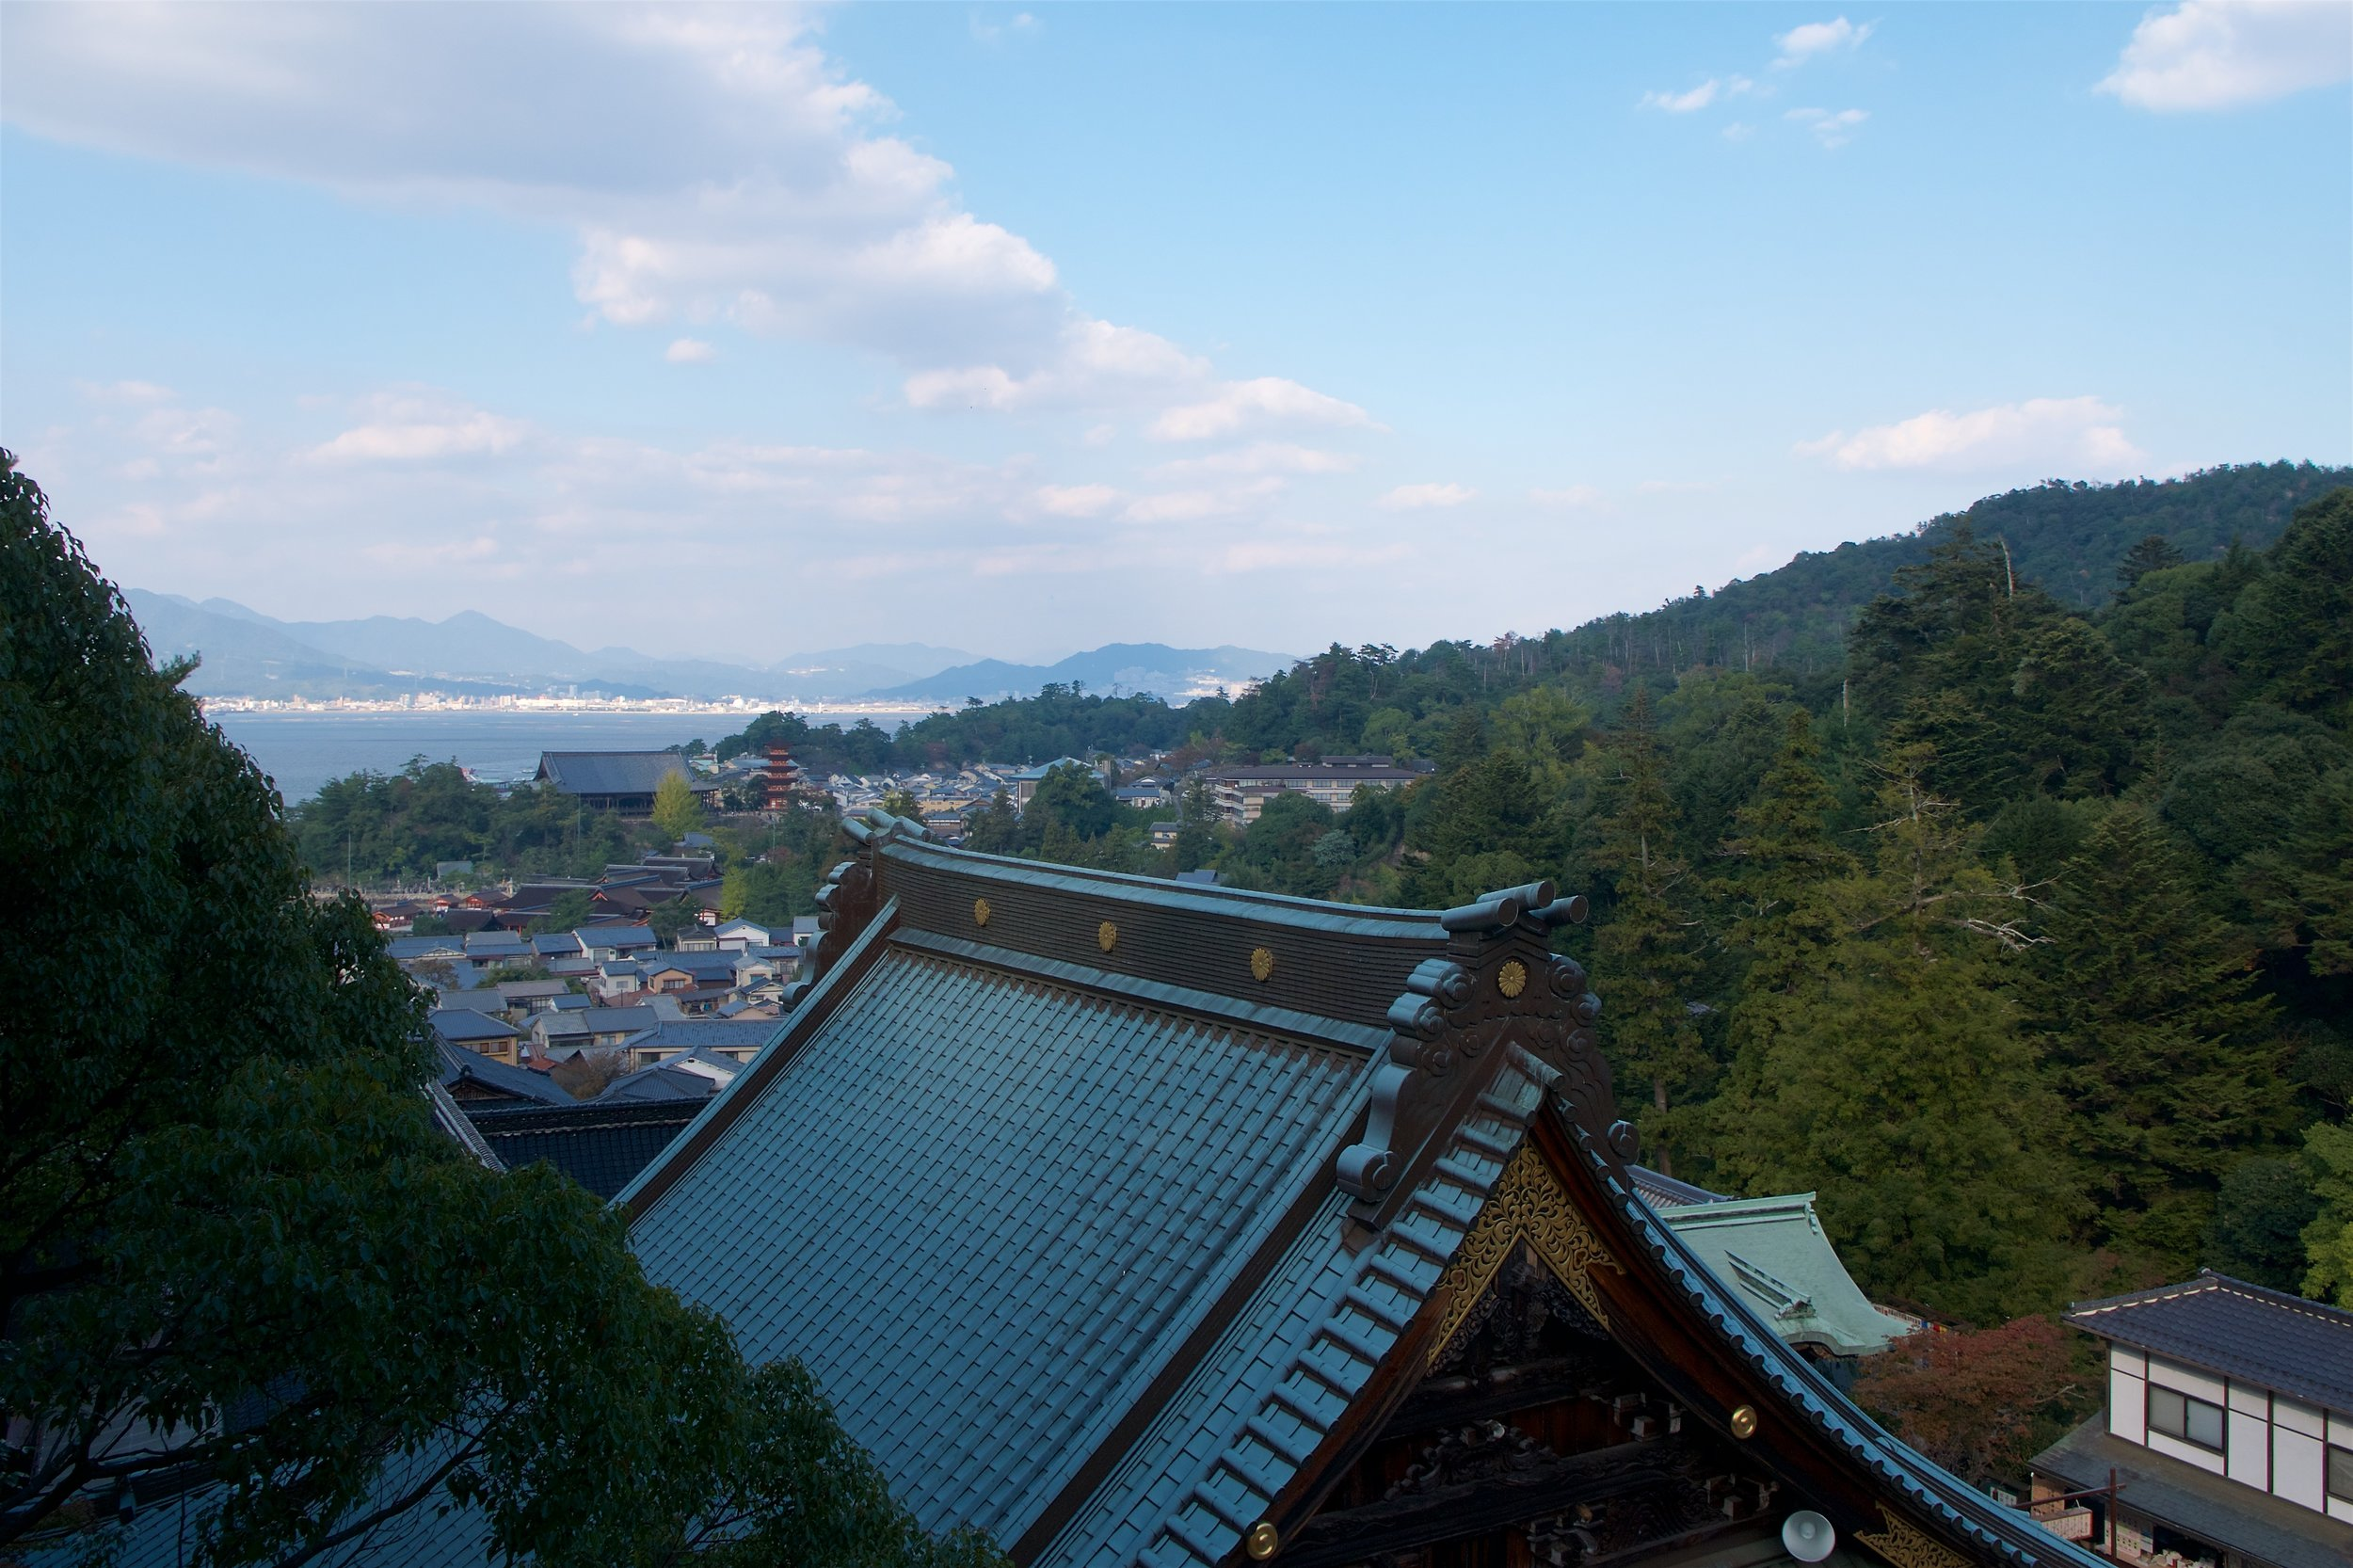 View from Maniden Hall at Daisho-in Temple